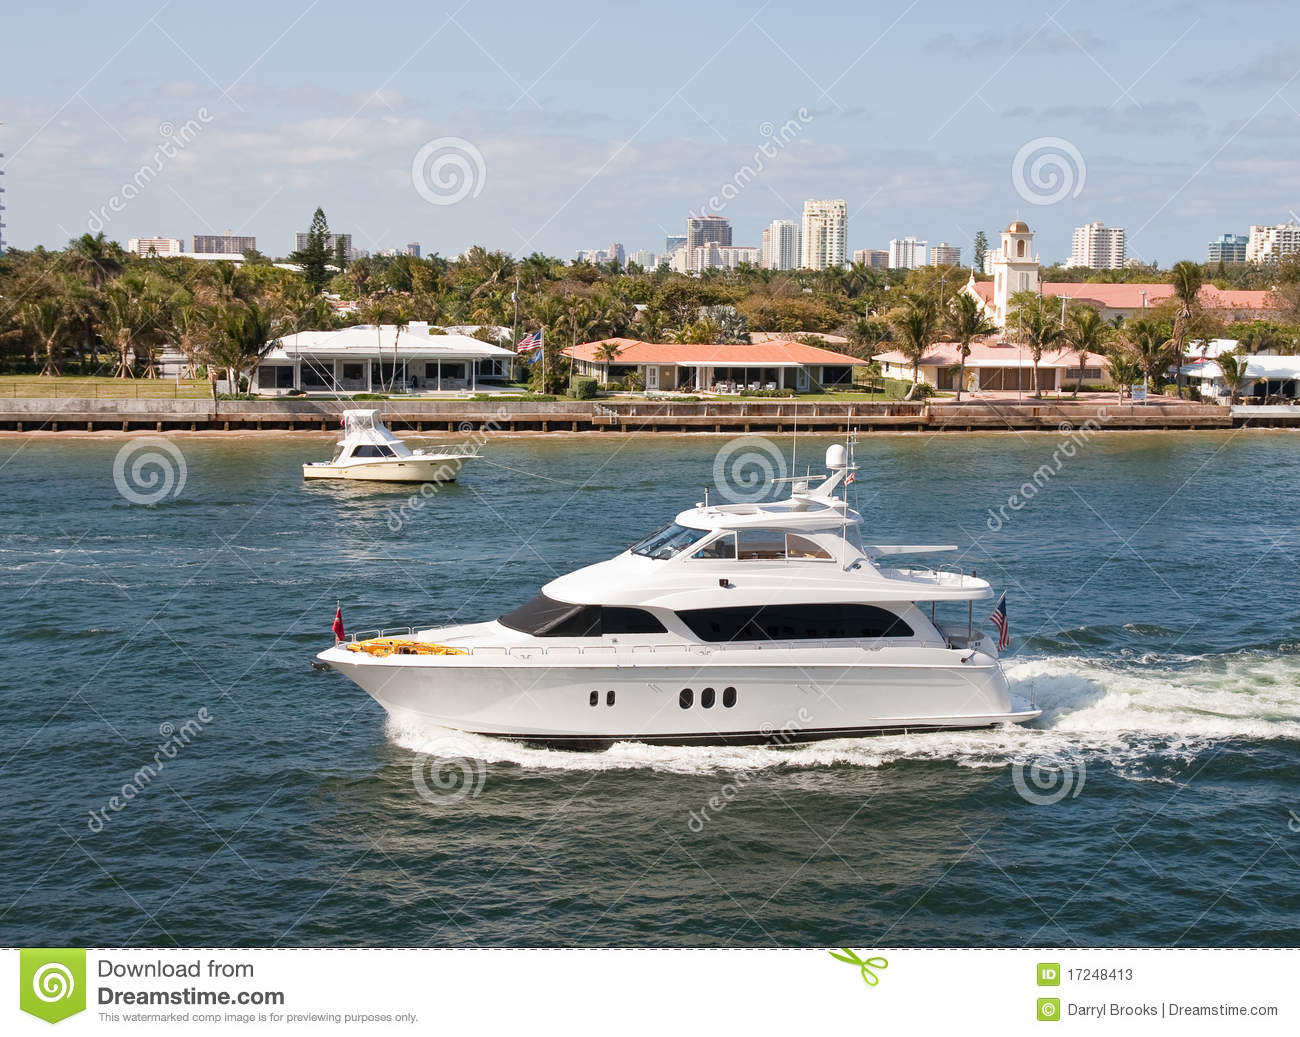 White Cabin Cruiser In A Canal Stock Photos Image 17248413